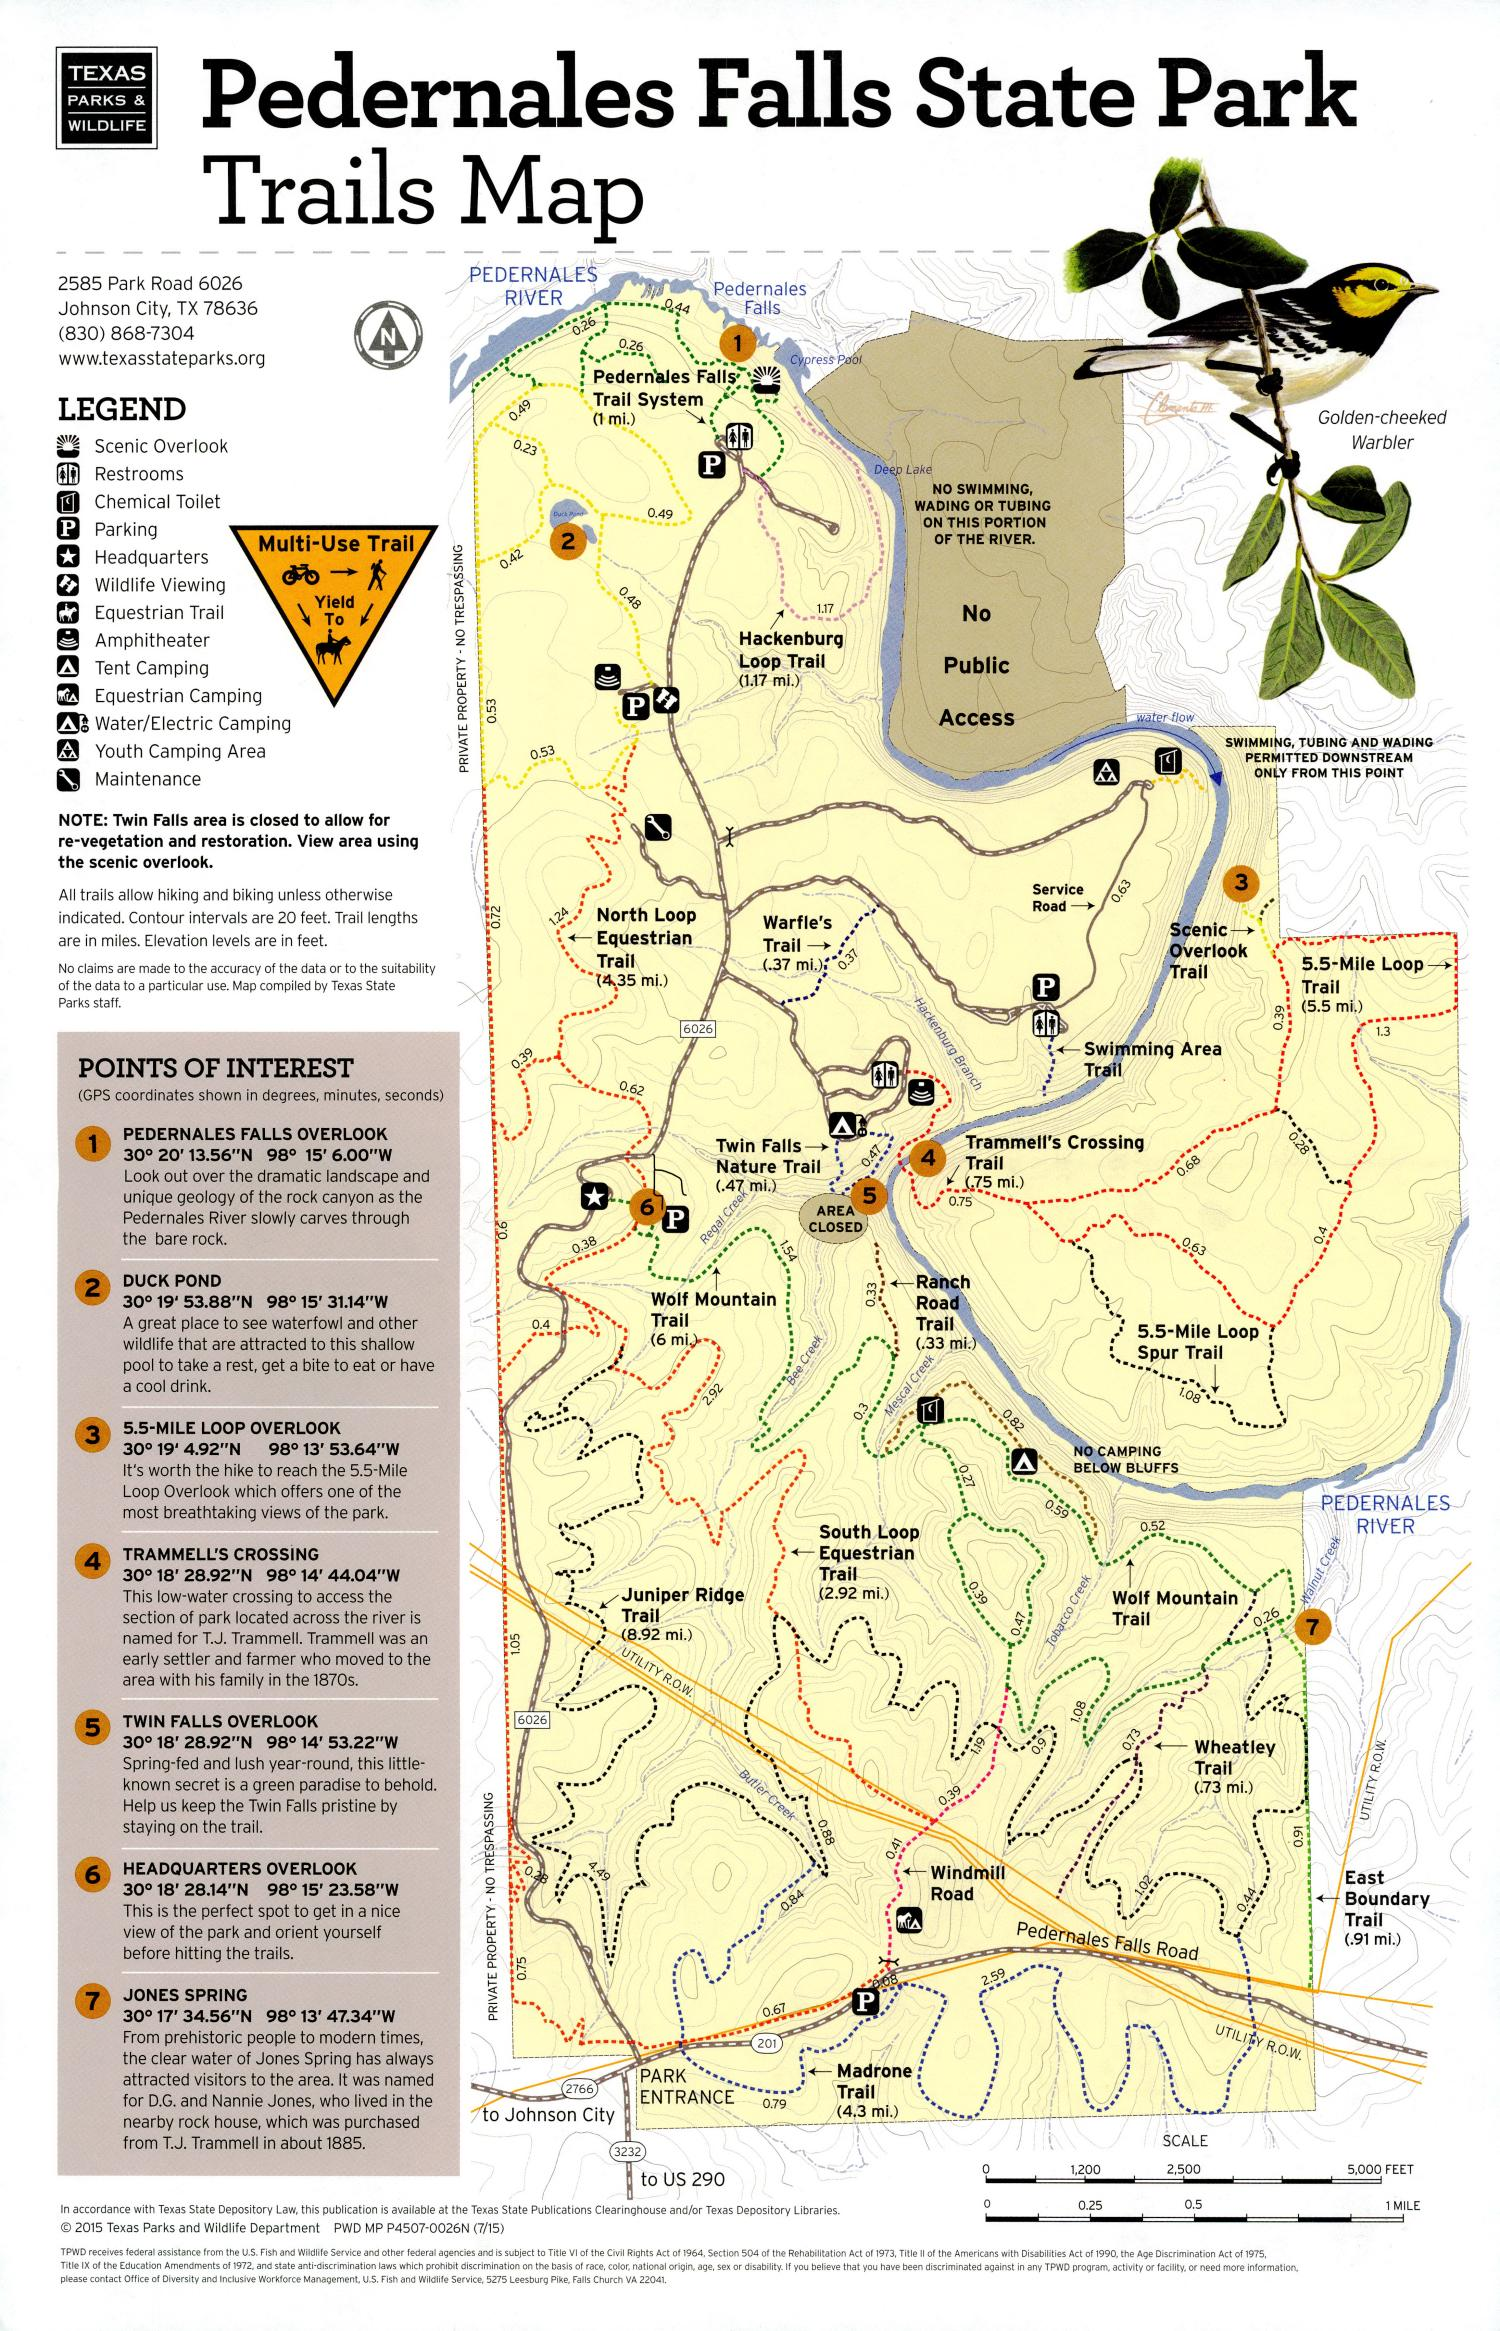 Pedernales Falls State Park Trails Map, Map of the Pedernales Falls State Park outlining hiking trails and highlighting activities, facilities, and other features such as bathrooms, lodgings, water/electric, etc. It also contains general information for the park and for the Texas Parks and Wildlife Department.,